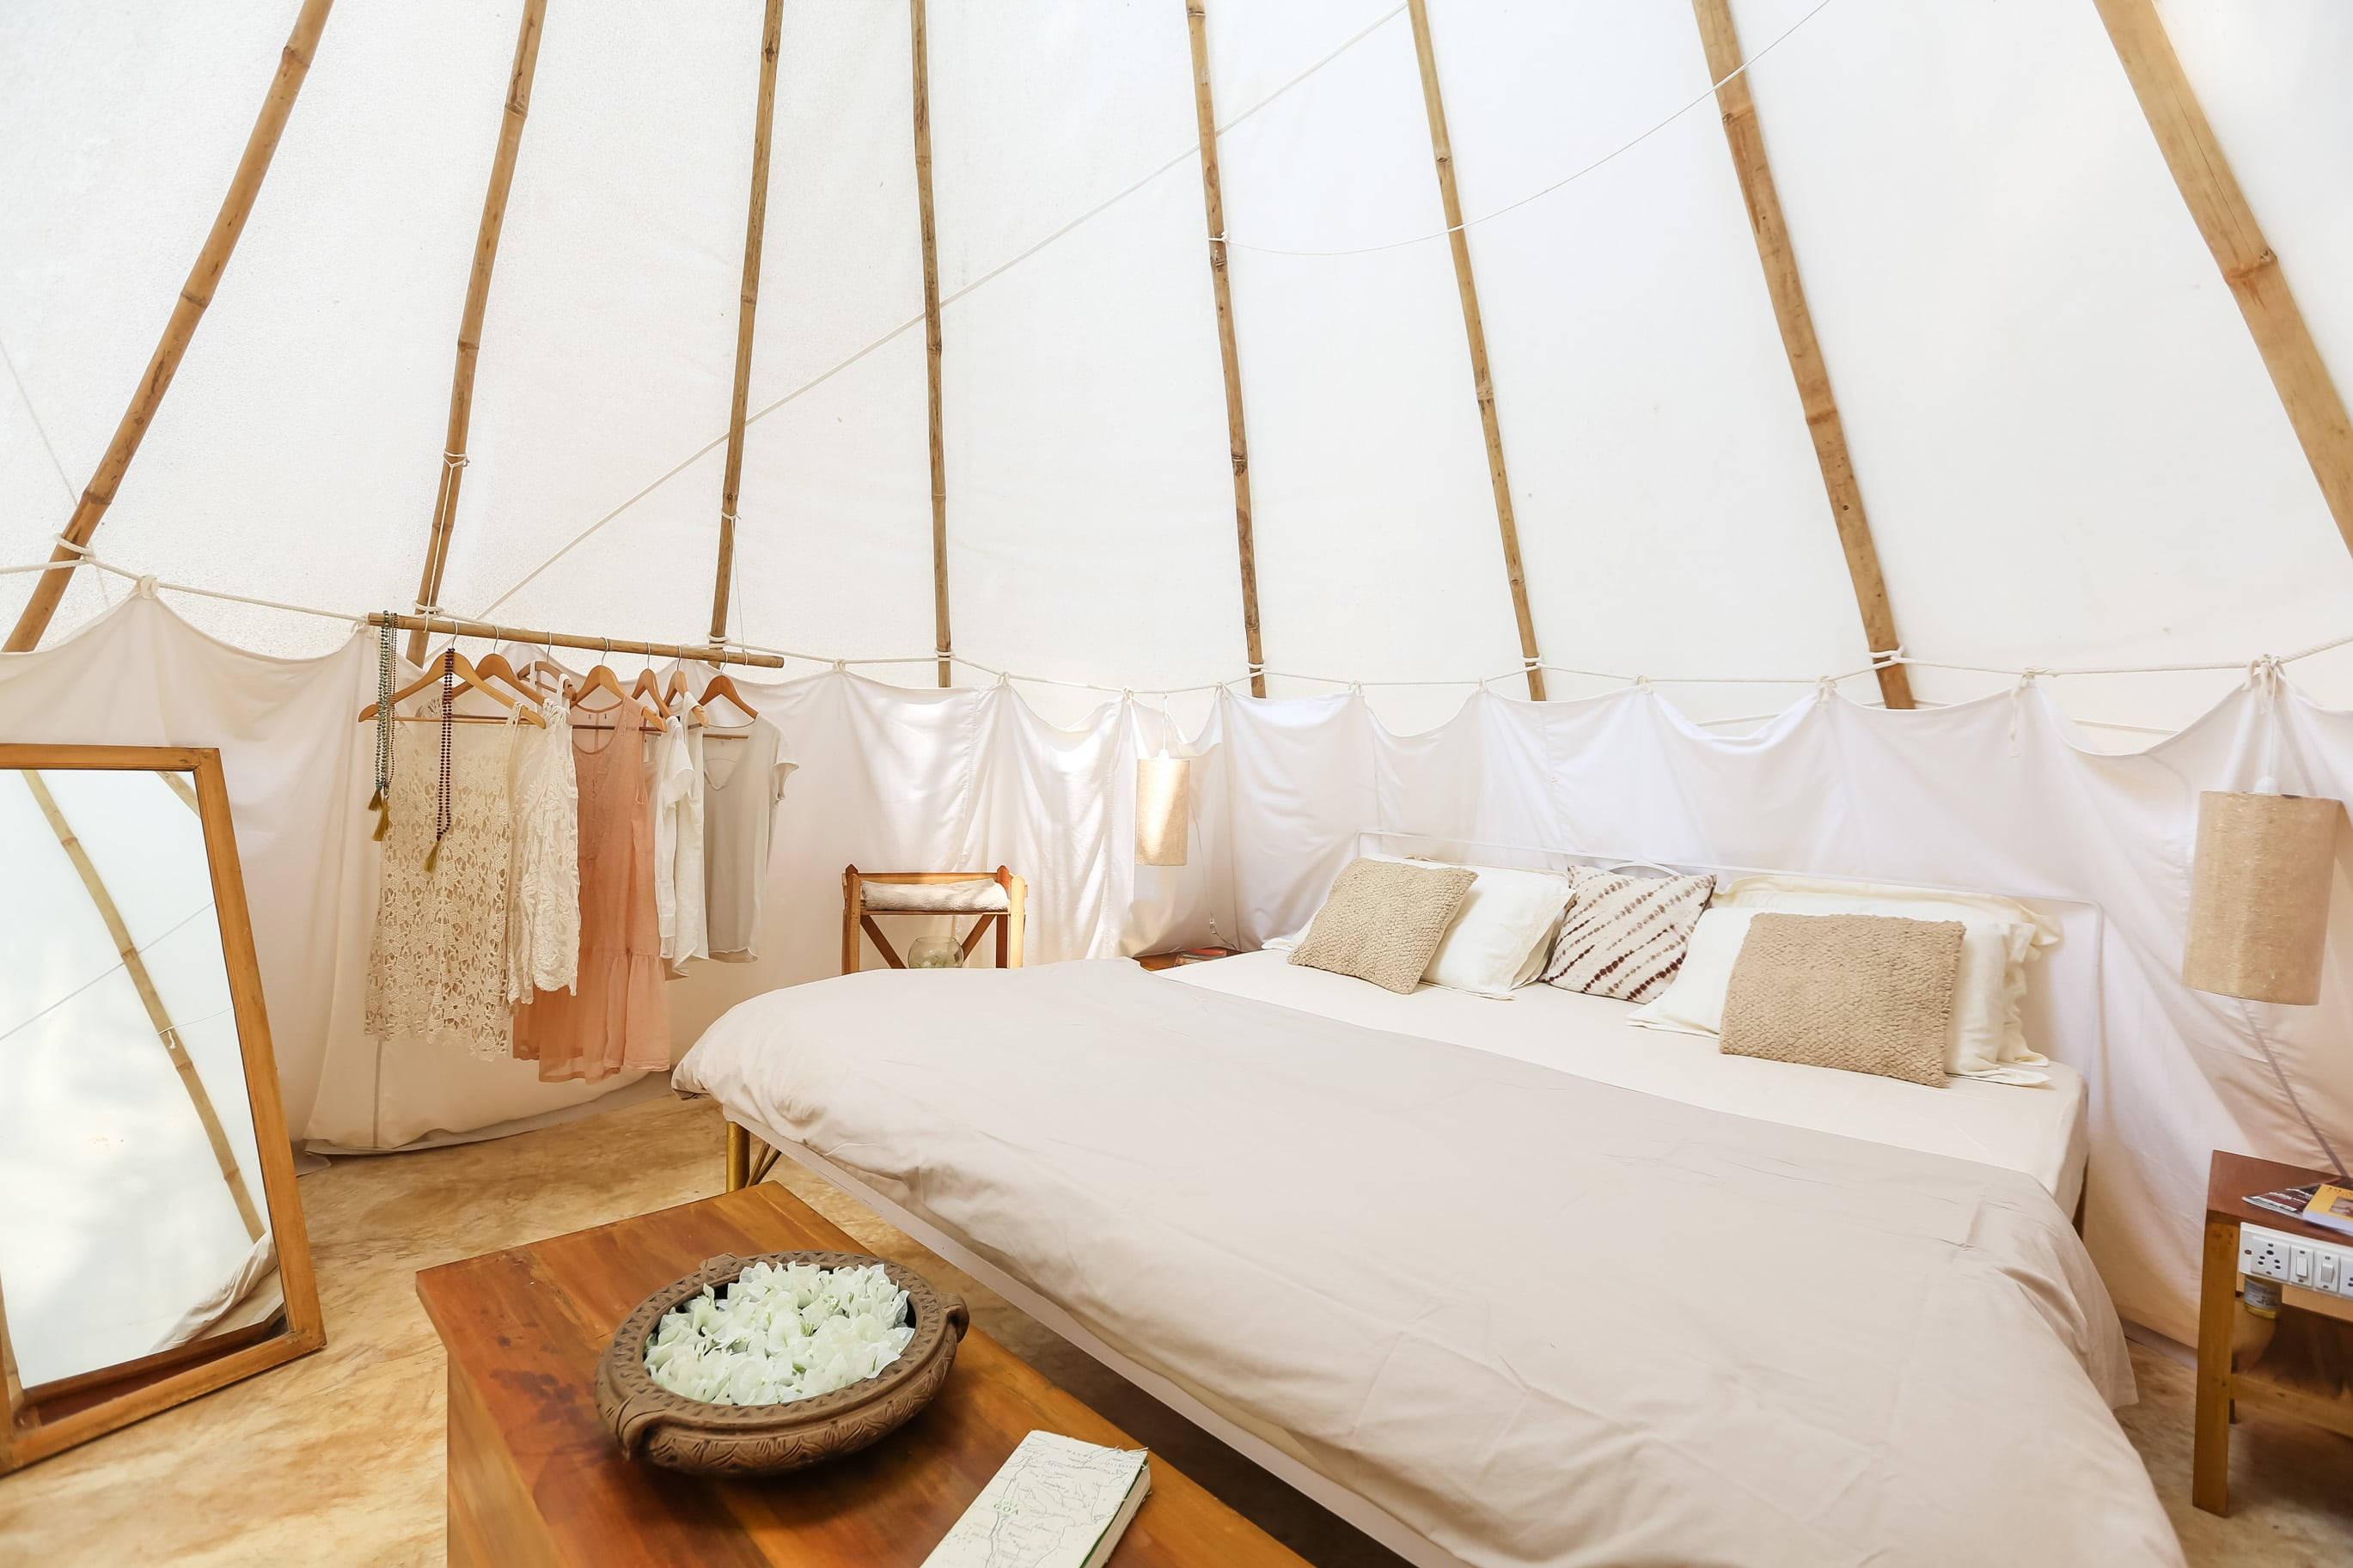 Glamping in Luxury Teepee Tents in South Goa, India